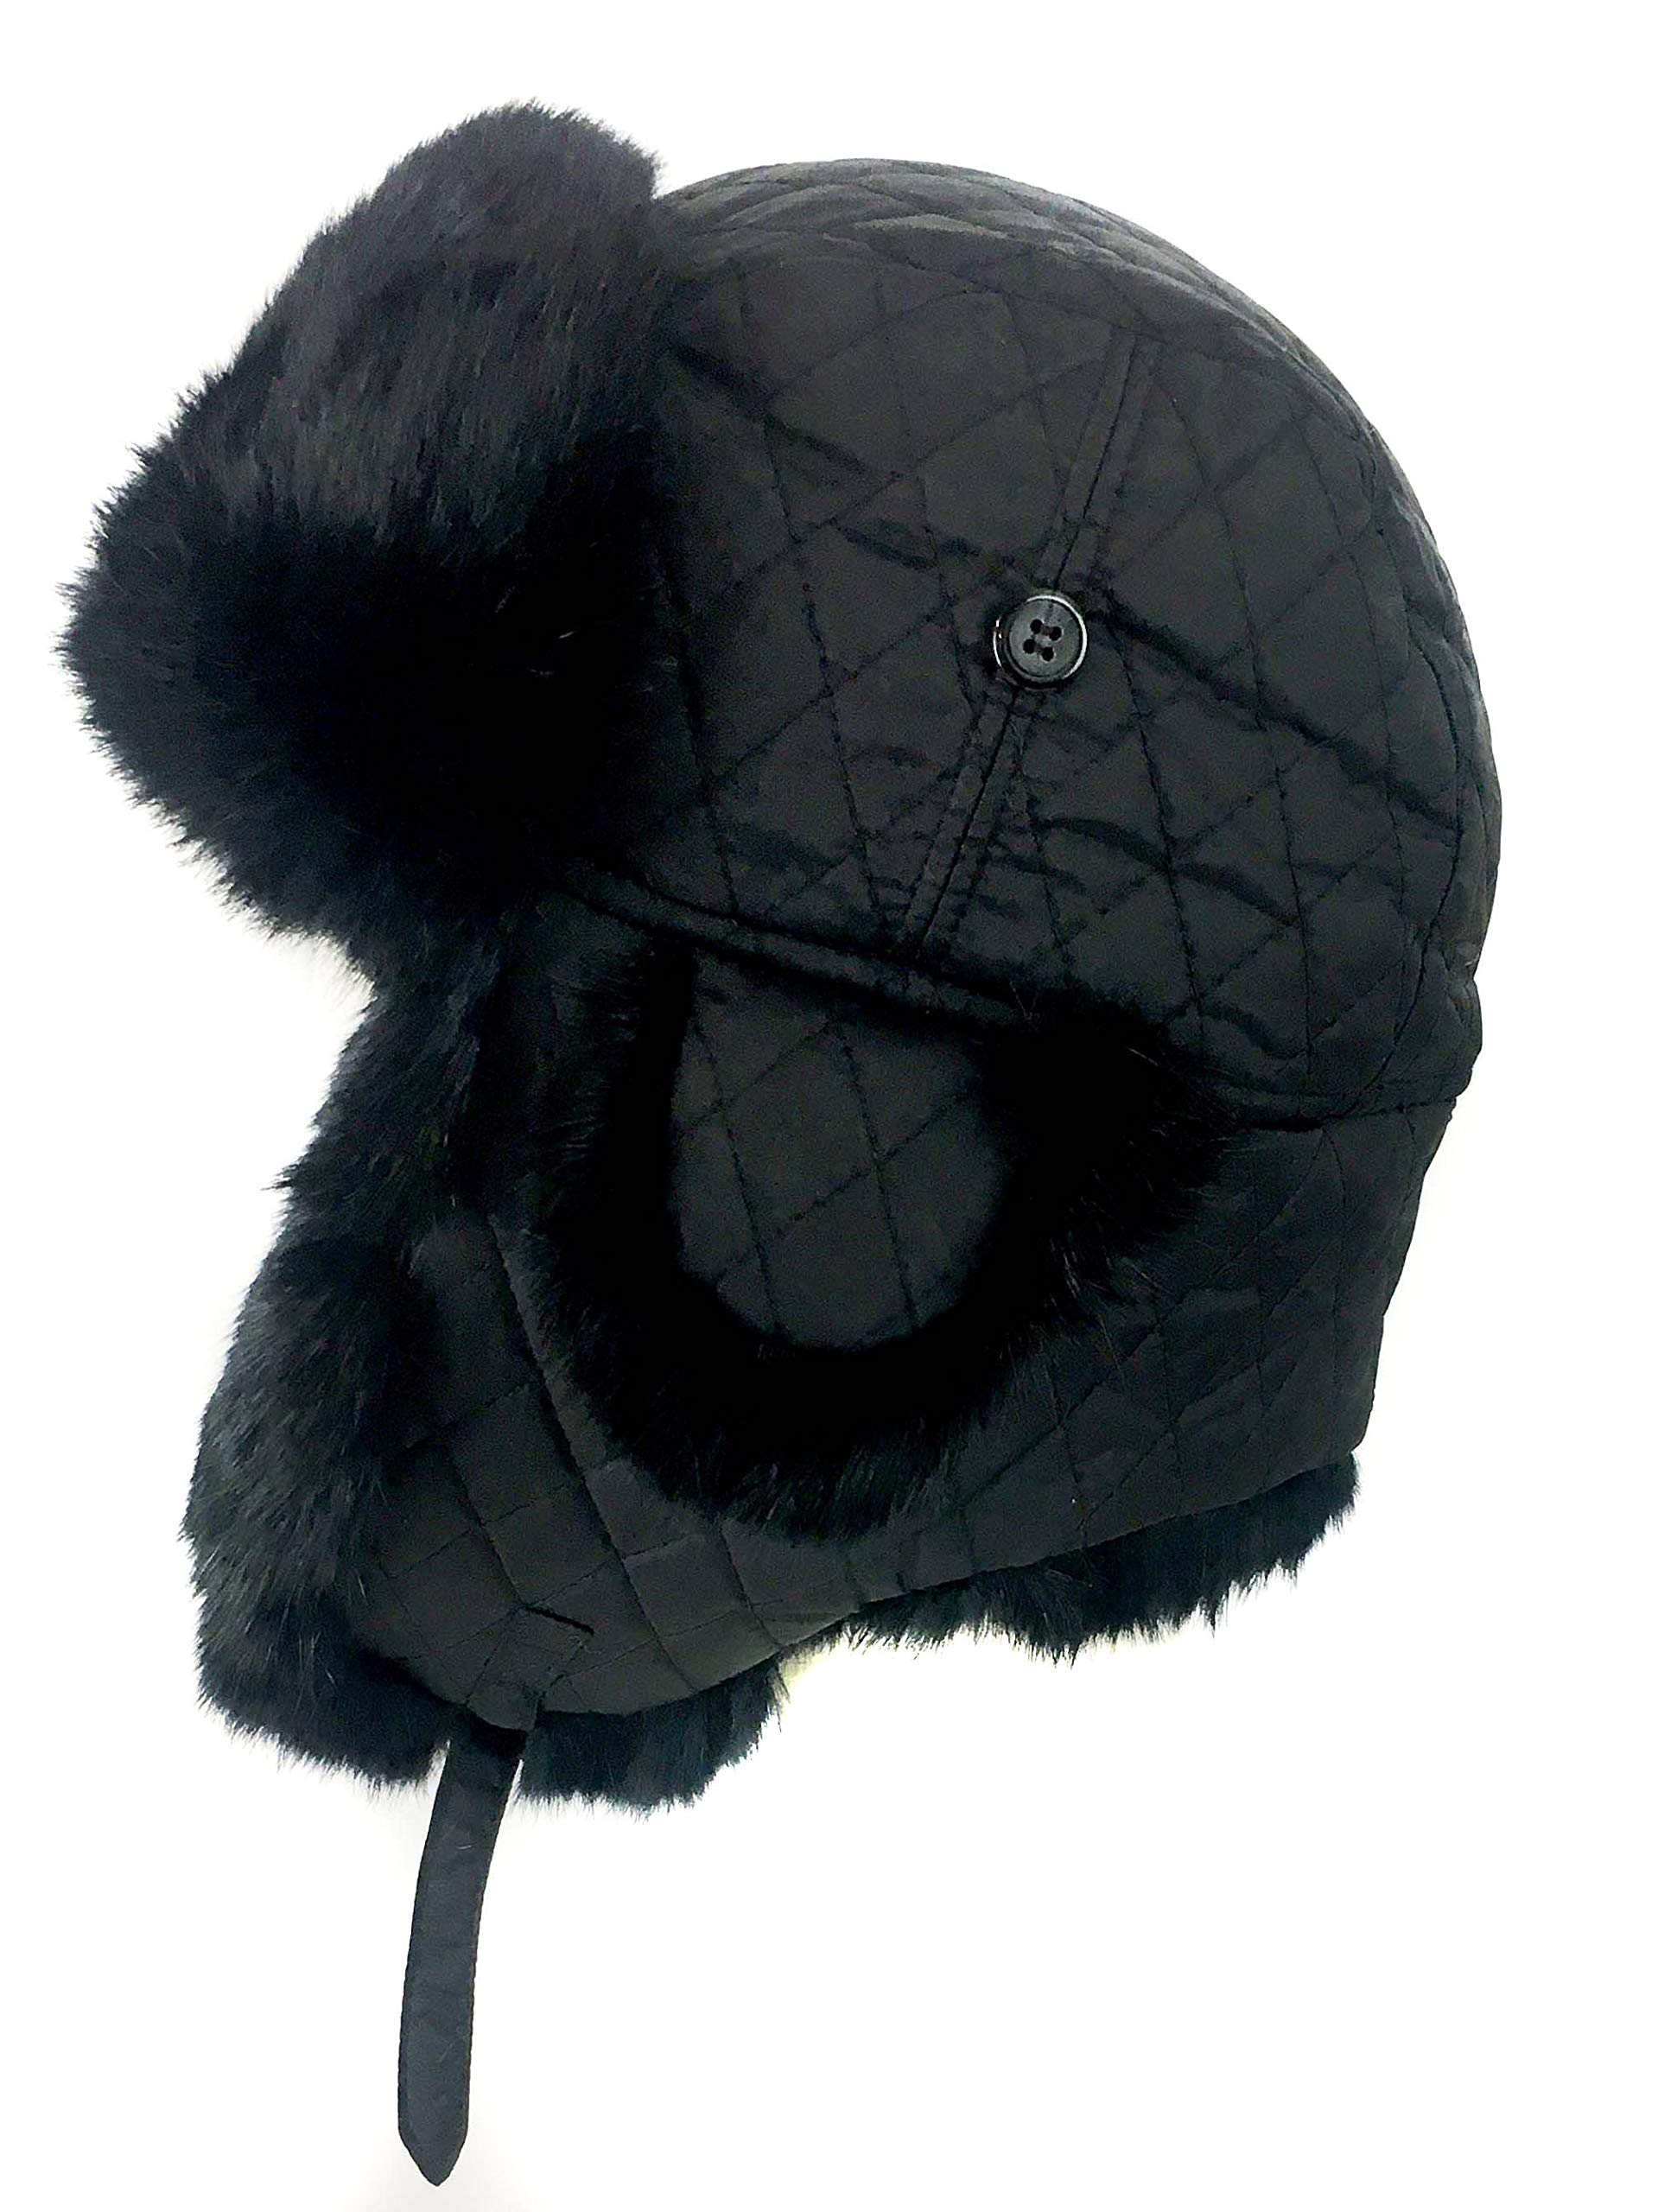 surell Trapper Aviator Hat with Rabbit Fur Trim - Warm Bomber Trooper Hat - Perfect Winter Luxury Gift (Black) by surell